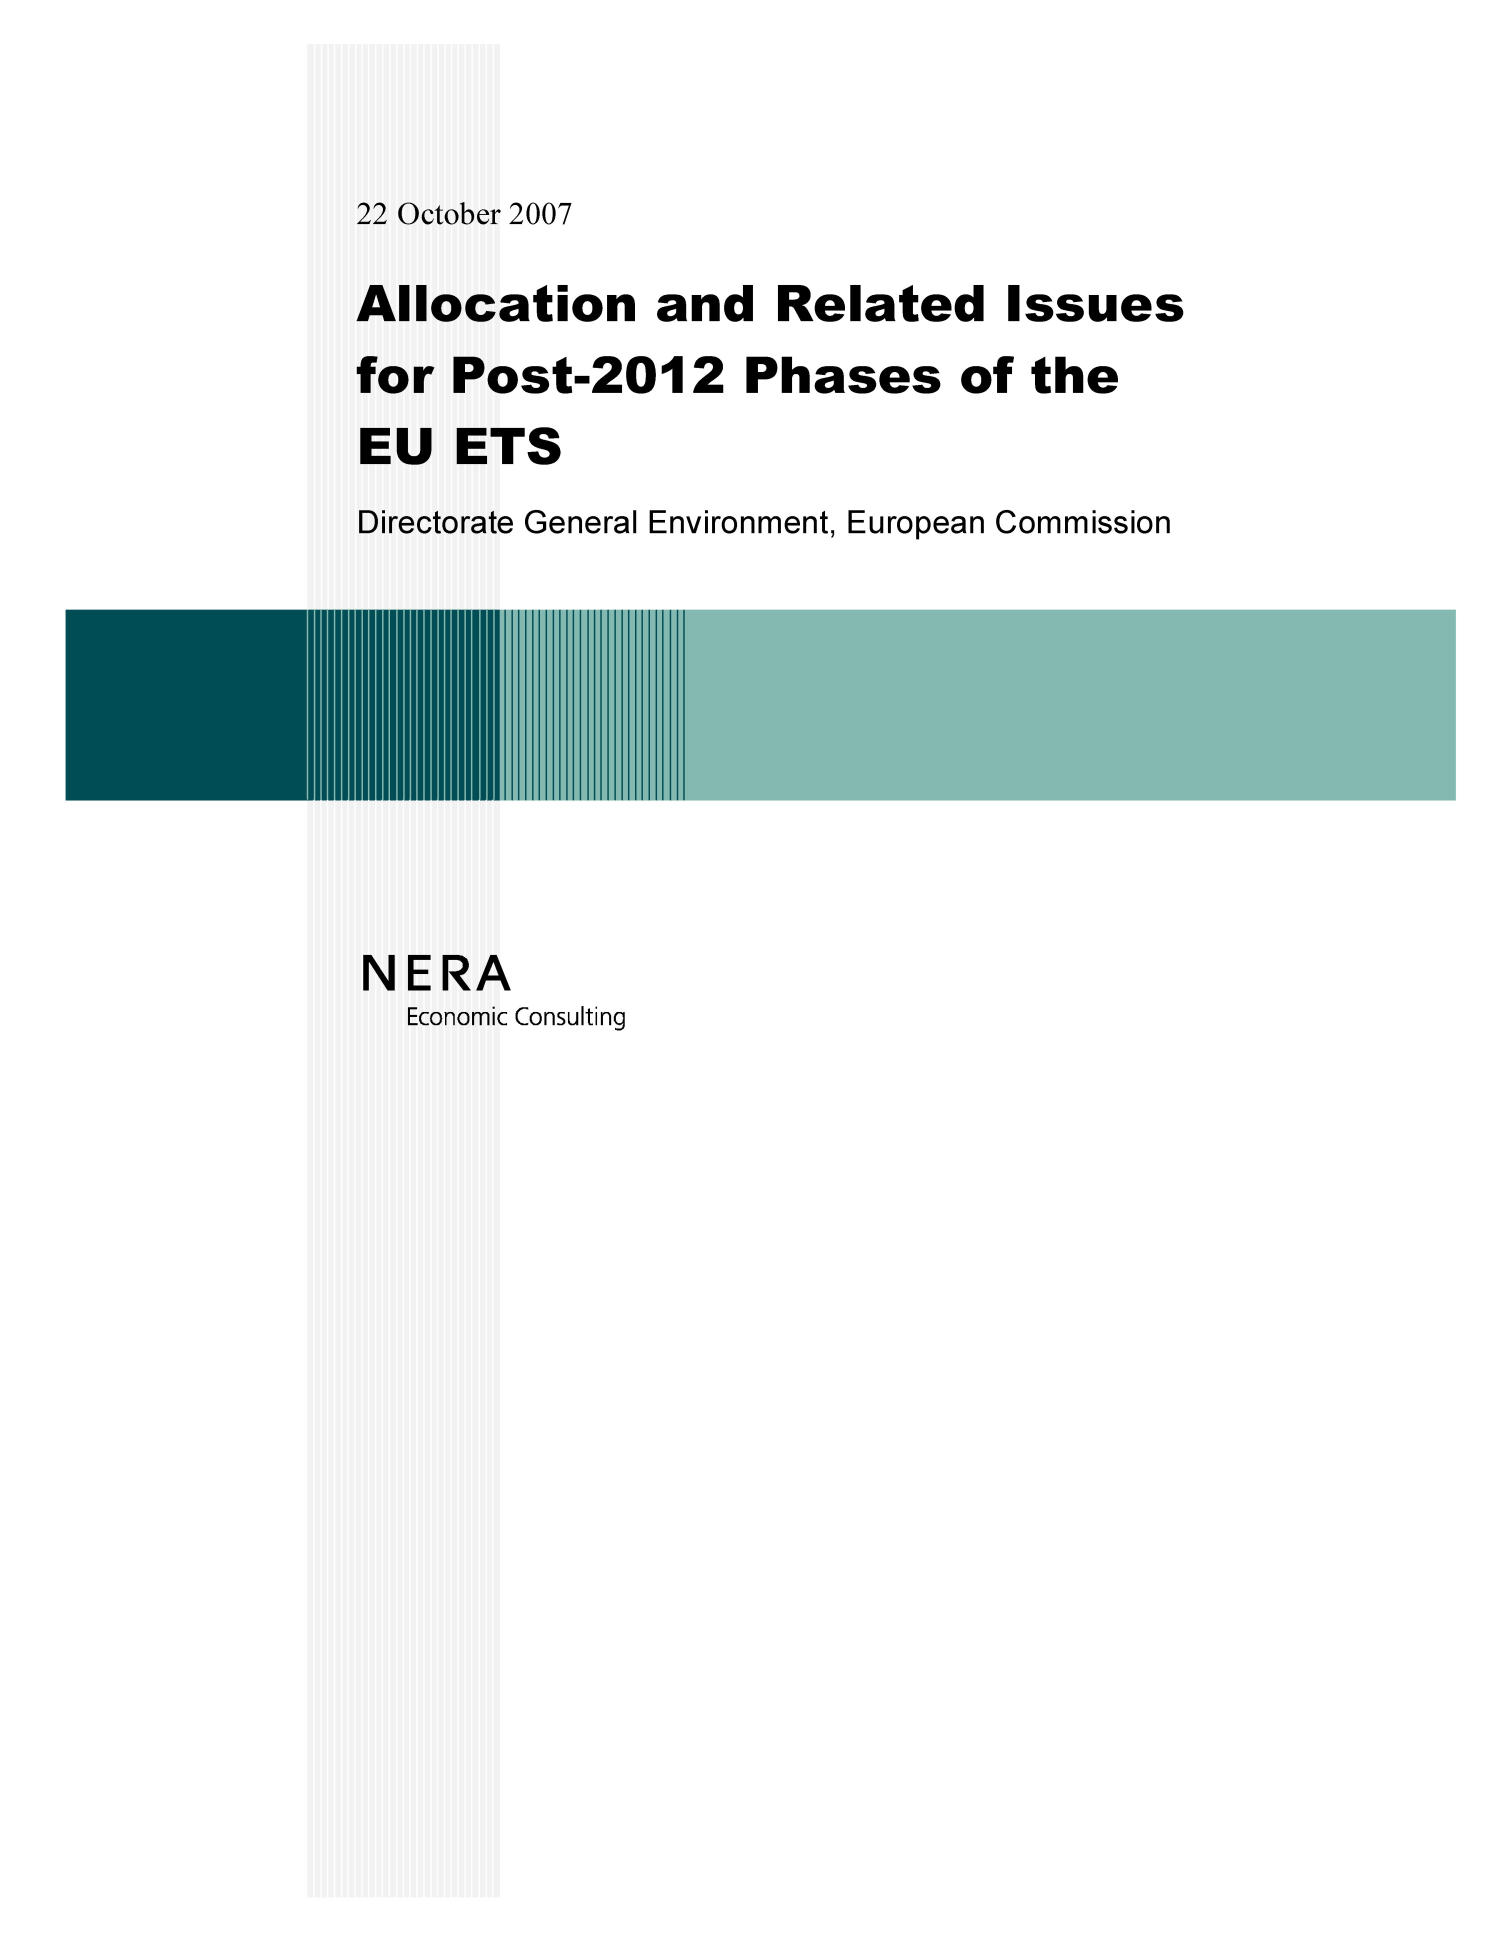 Allocation and Related Issues for Post-2012 Phases of the EU ETS                                                                                                      Front Cover